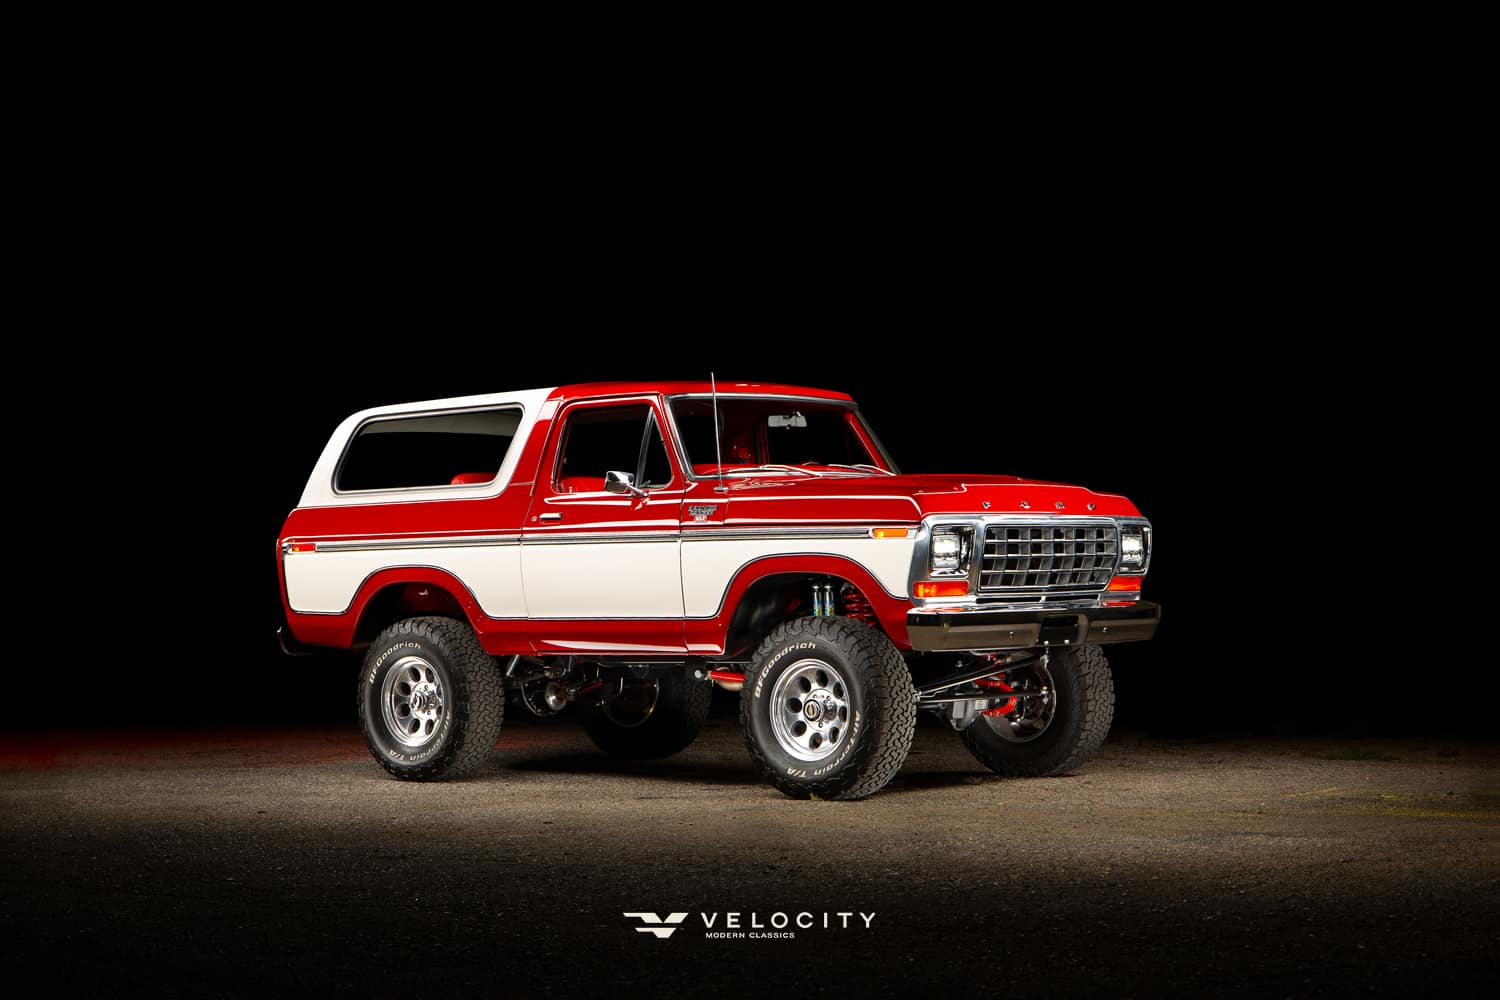 1978 Ford Bronco With Coyote V8 And Whipple Supercharger Costs Supercar Money Autoevolution